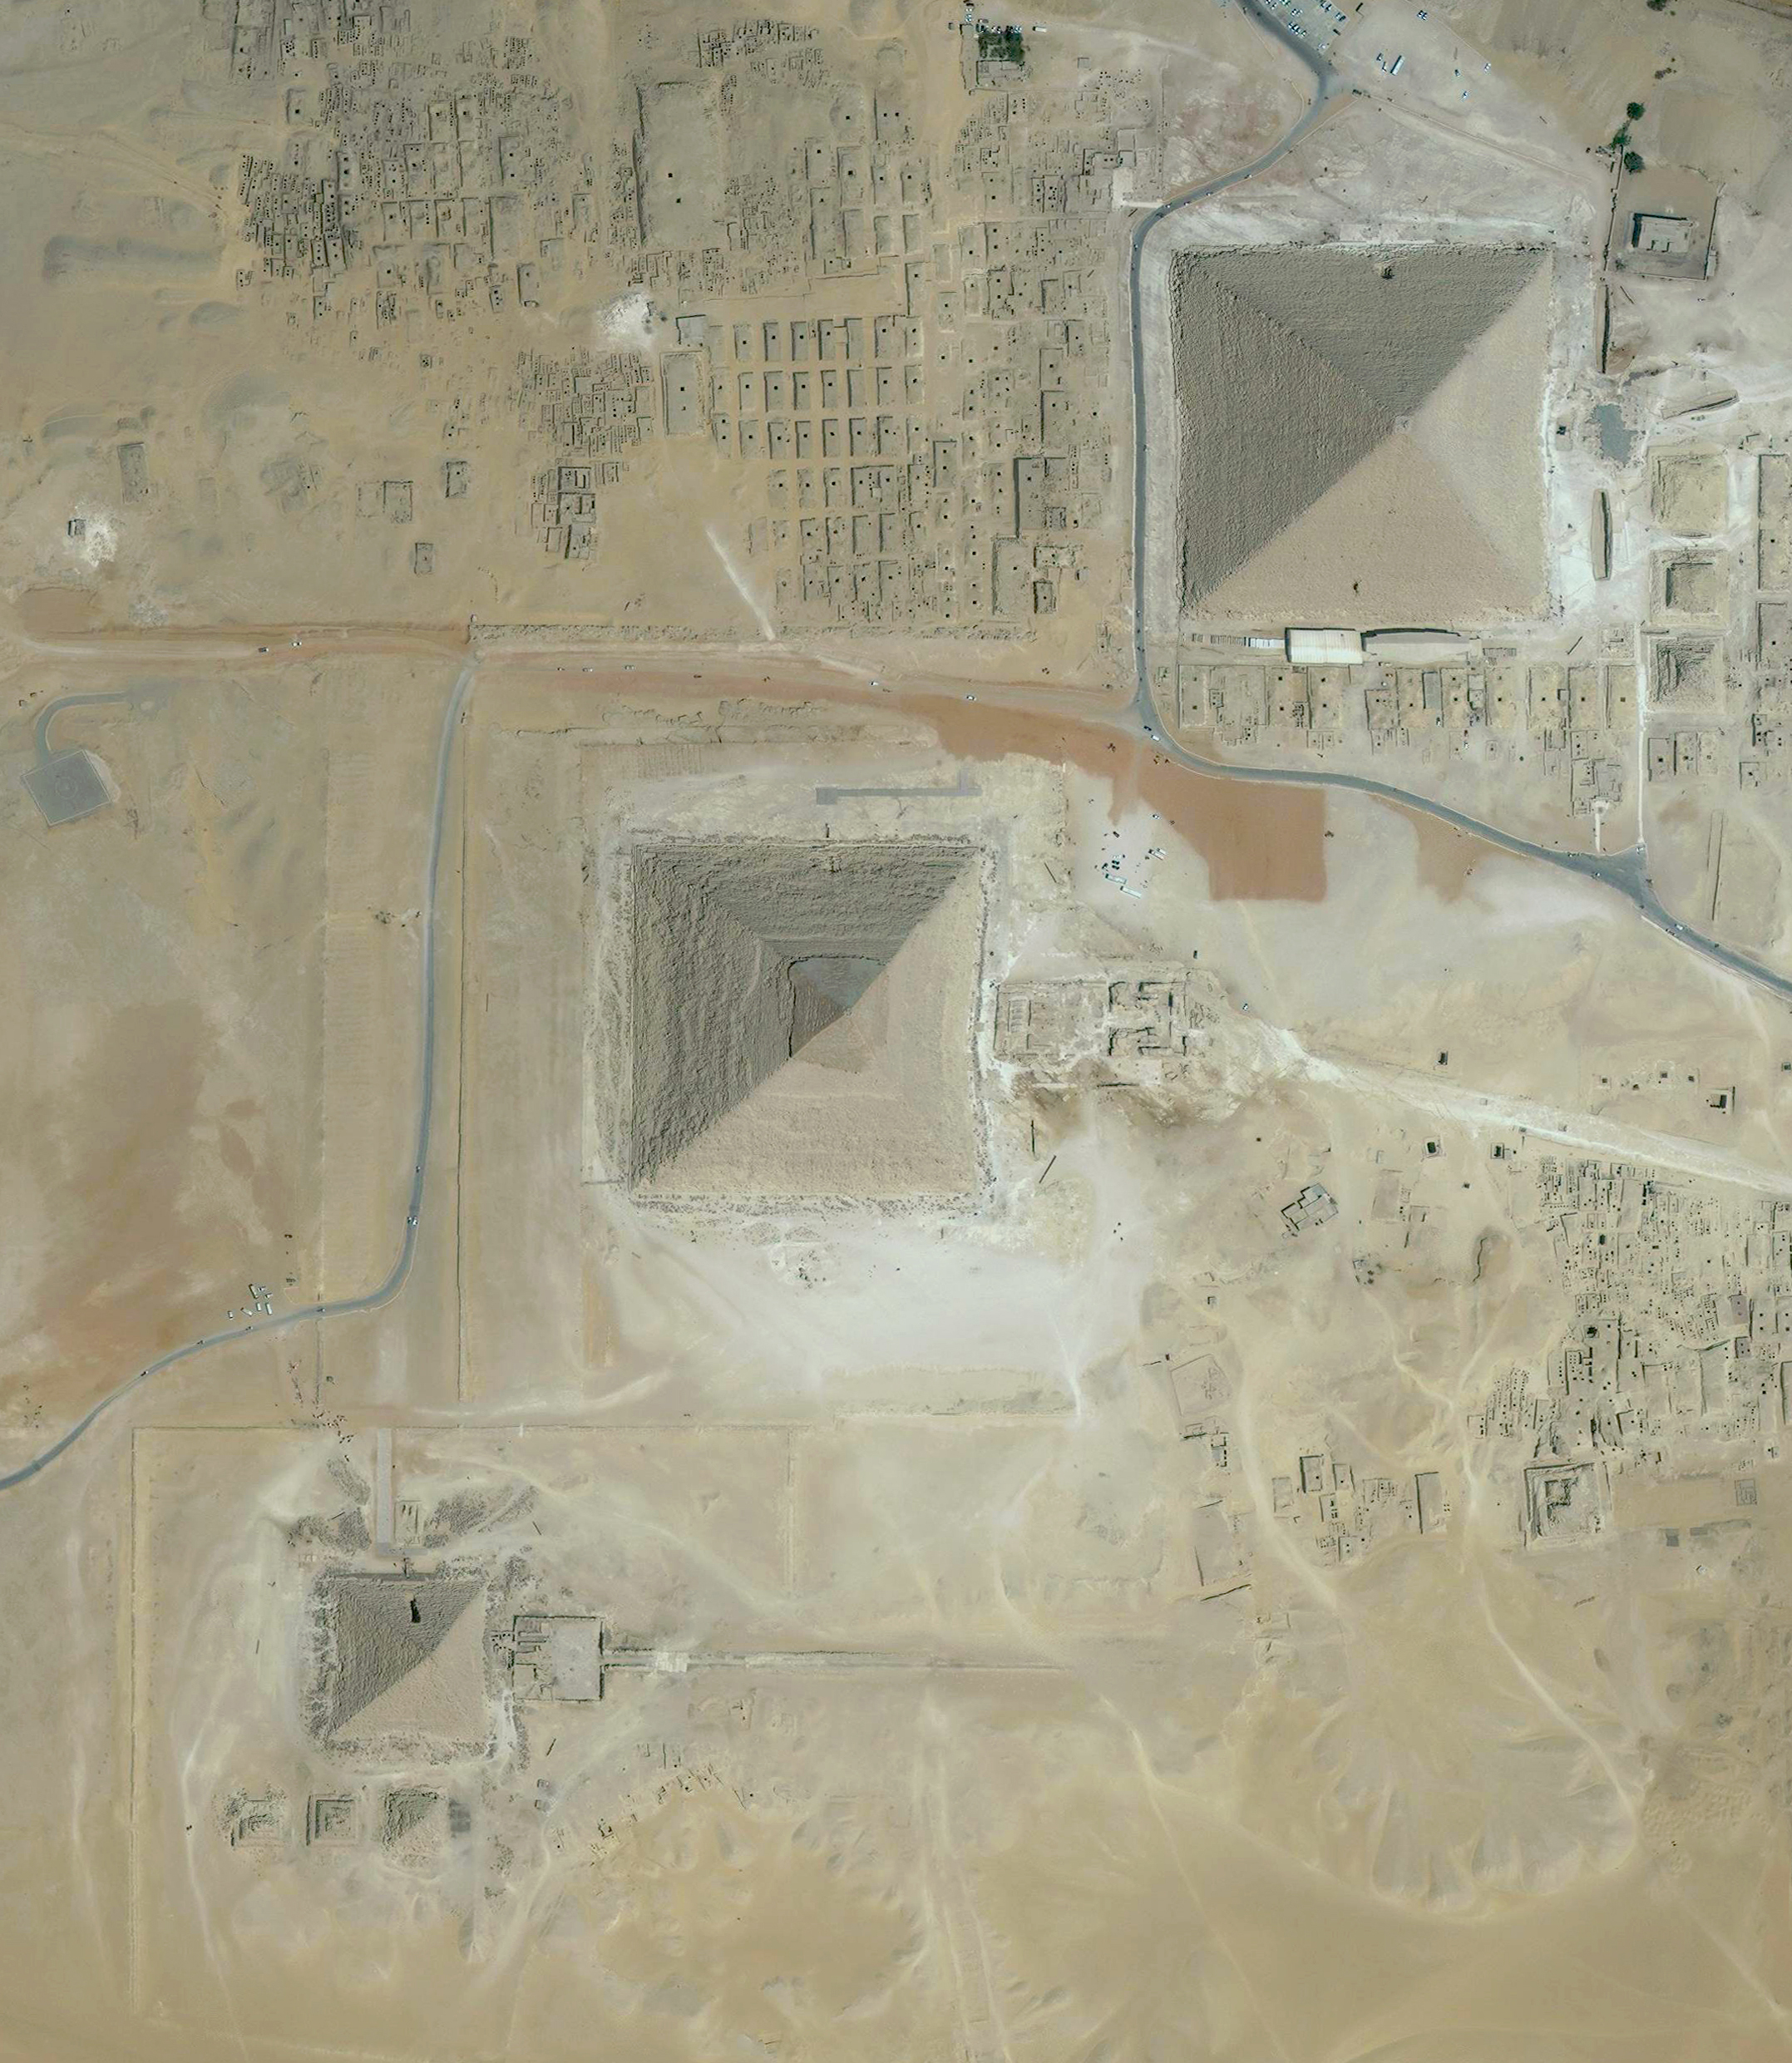 3/10/2017   Great Pyramids of Giza   Giza, Egypt  29.979234, 31.134201    The Great Pyramids of Giza are located on the outskirts of Cairo, Egypt. Dating back to 2580 BC, the Great Pyramid, the largest structure at the site, is the oldest of the Seven Wonders of the Ancient world and the only one to remain largely intact. With an estimated 2,300,000 stone blocks weighing from 2 to 30 tons each, the 481 foot pyramid was the tallest structure in the world for more than 3,800 years.